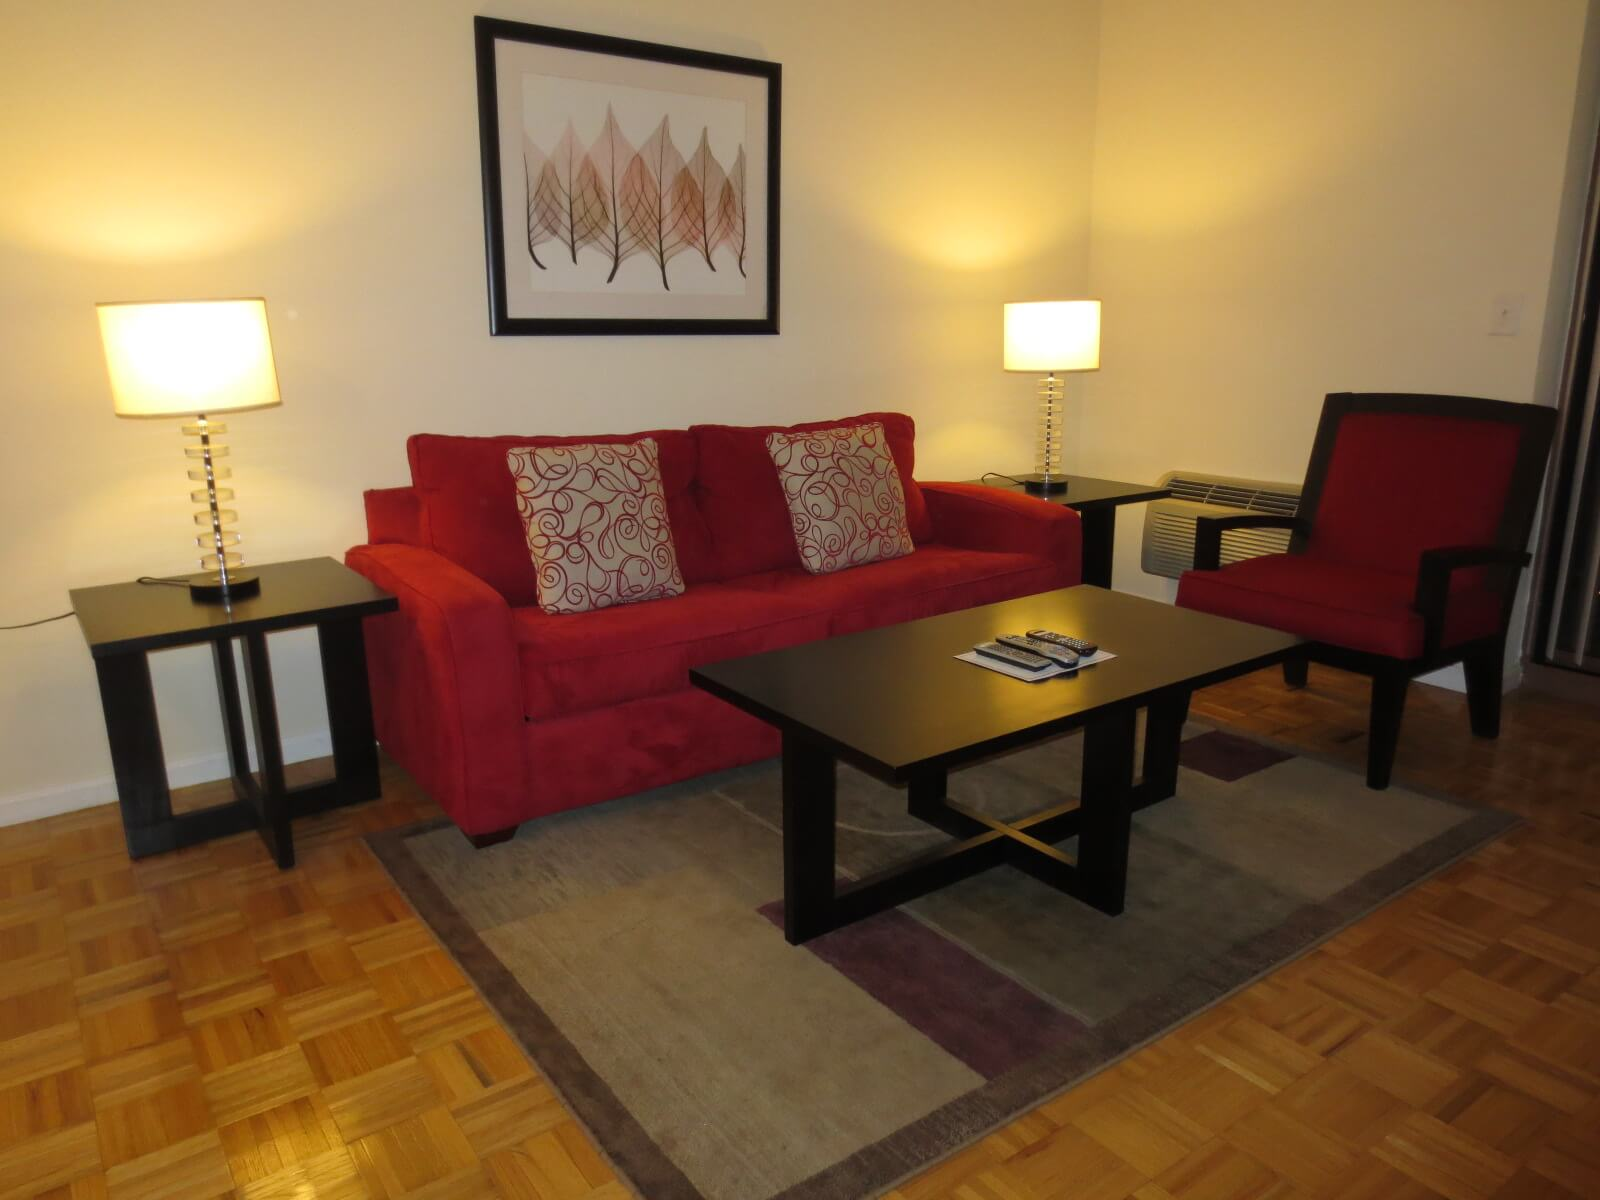 Hoboken Furnished 1 Bedroom Apartment For Rent 5160 Per Month Rental ID 2870227